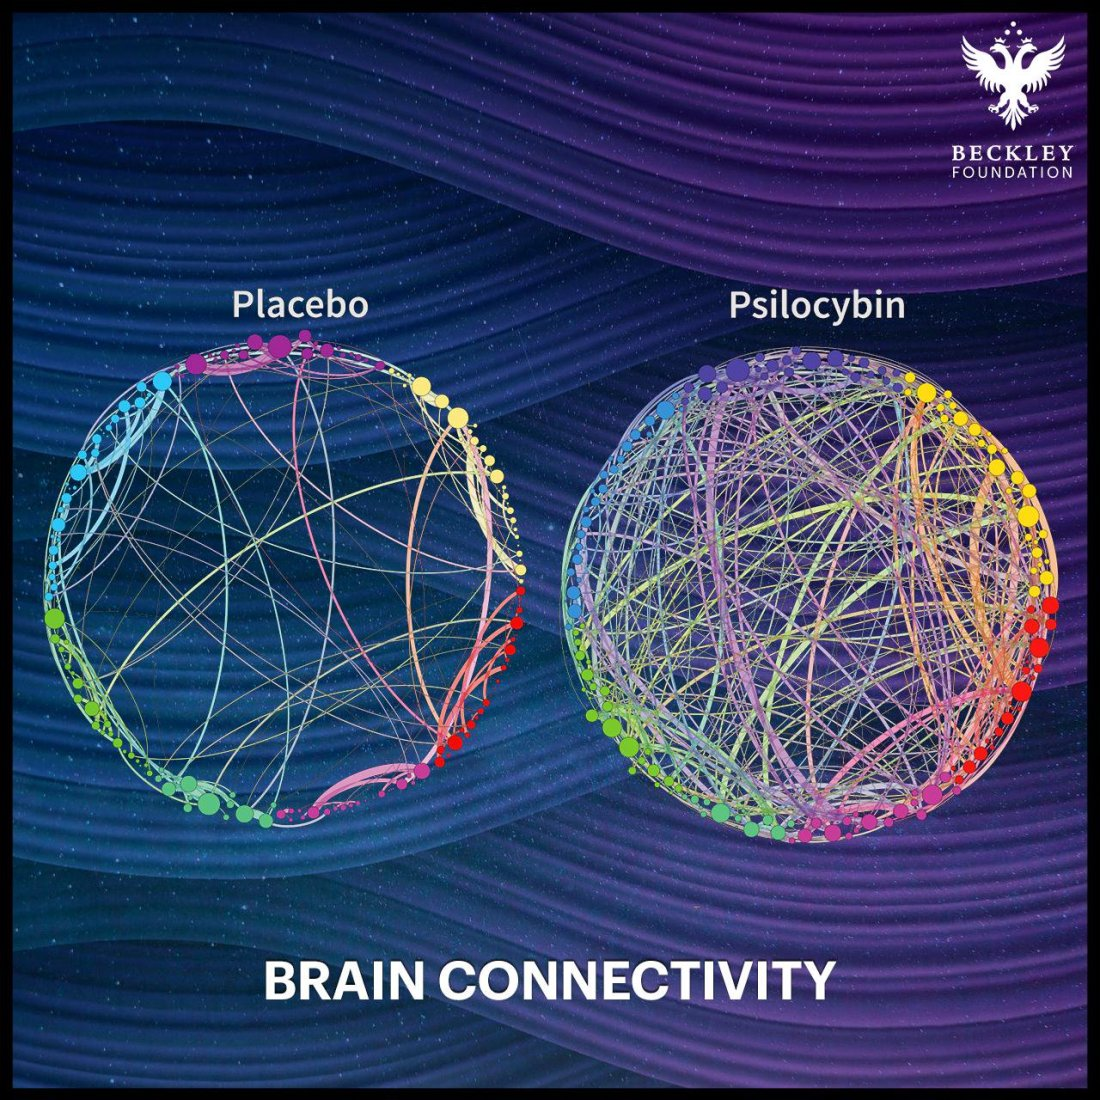 psilocybin brain connectivity